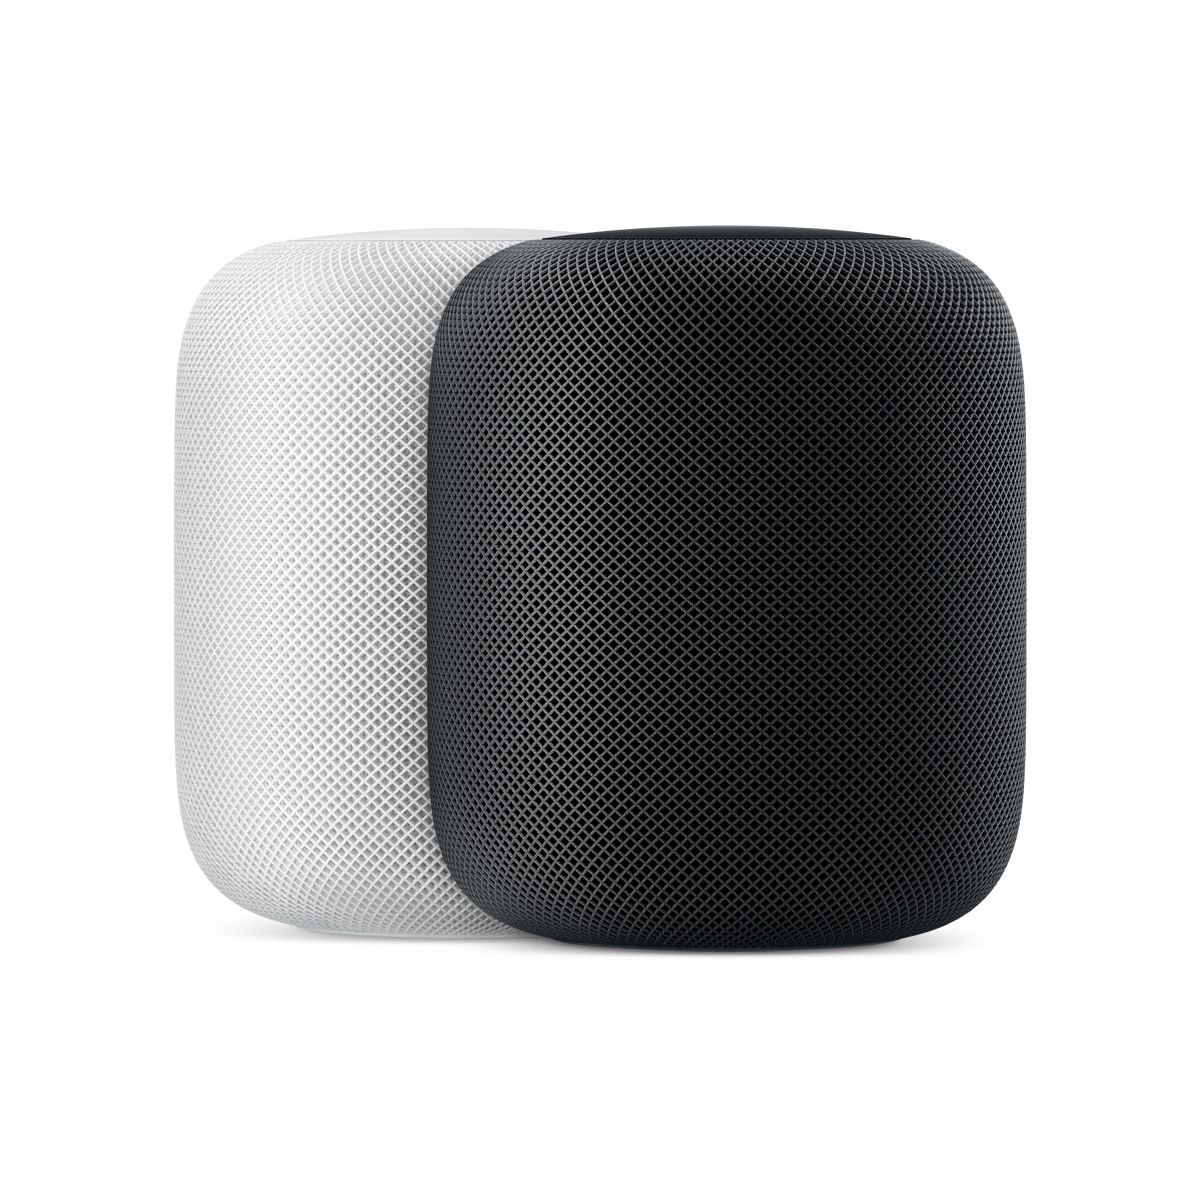 buy HomePod online in india best prices